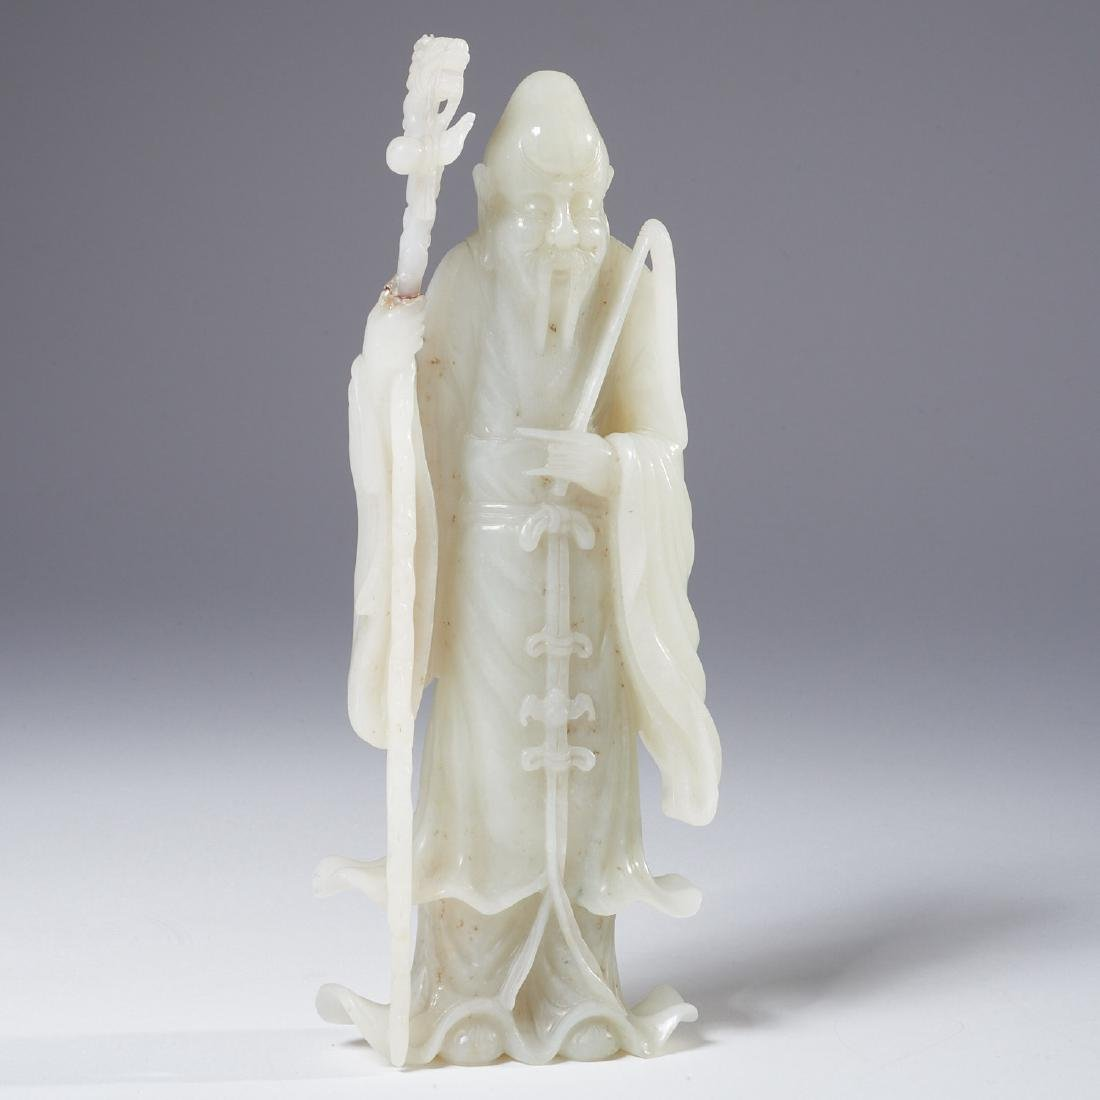 Chinese carved jade figure of Shou-Lao